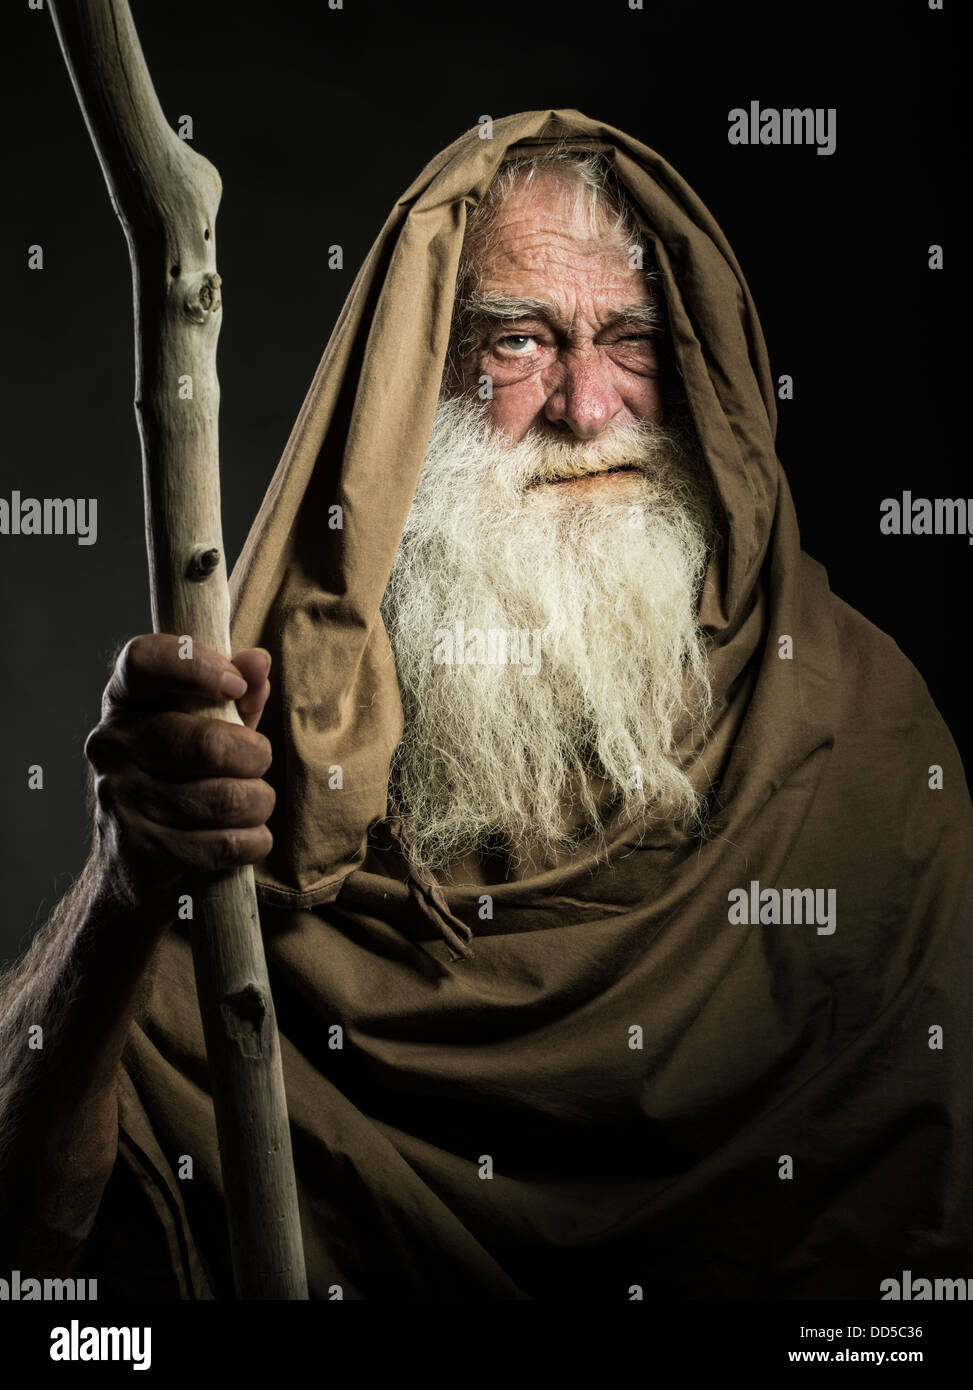 old man with white beard staff and cloak looks like wizard  / Gandalf / Moses / Dumbledore - Stock Image